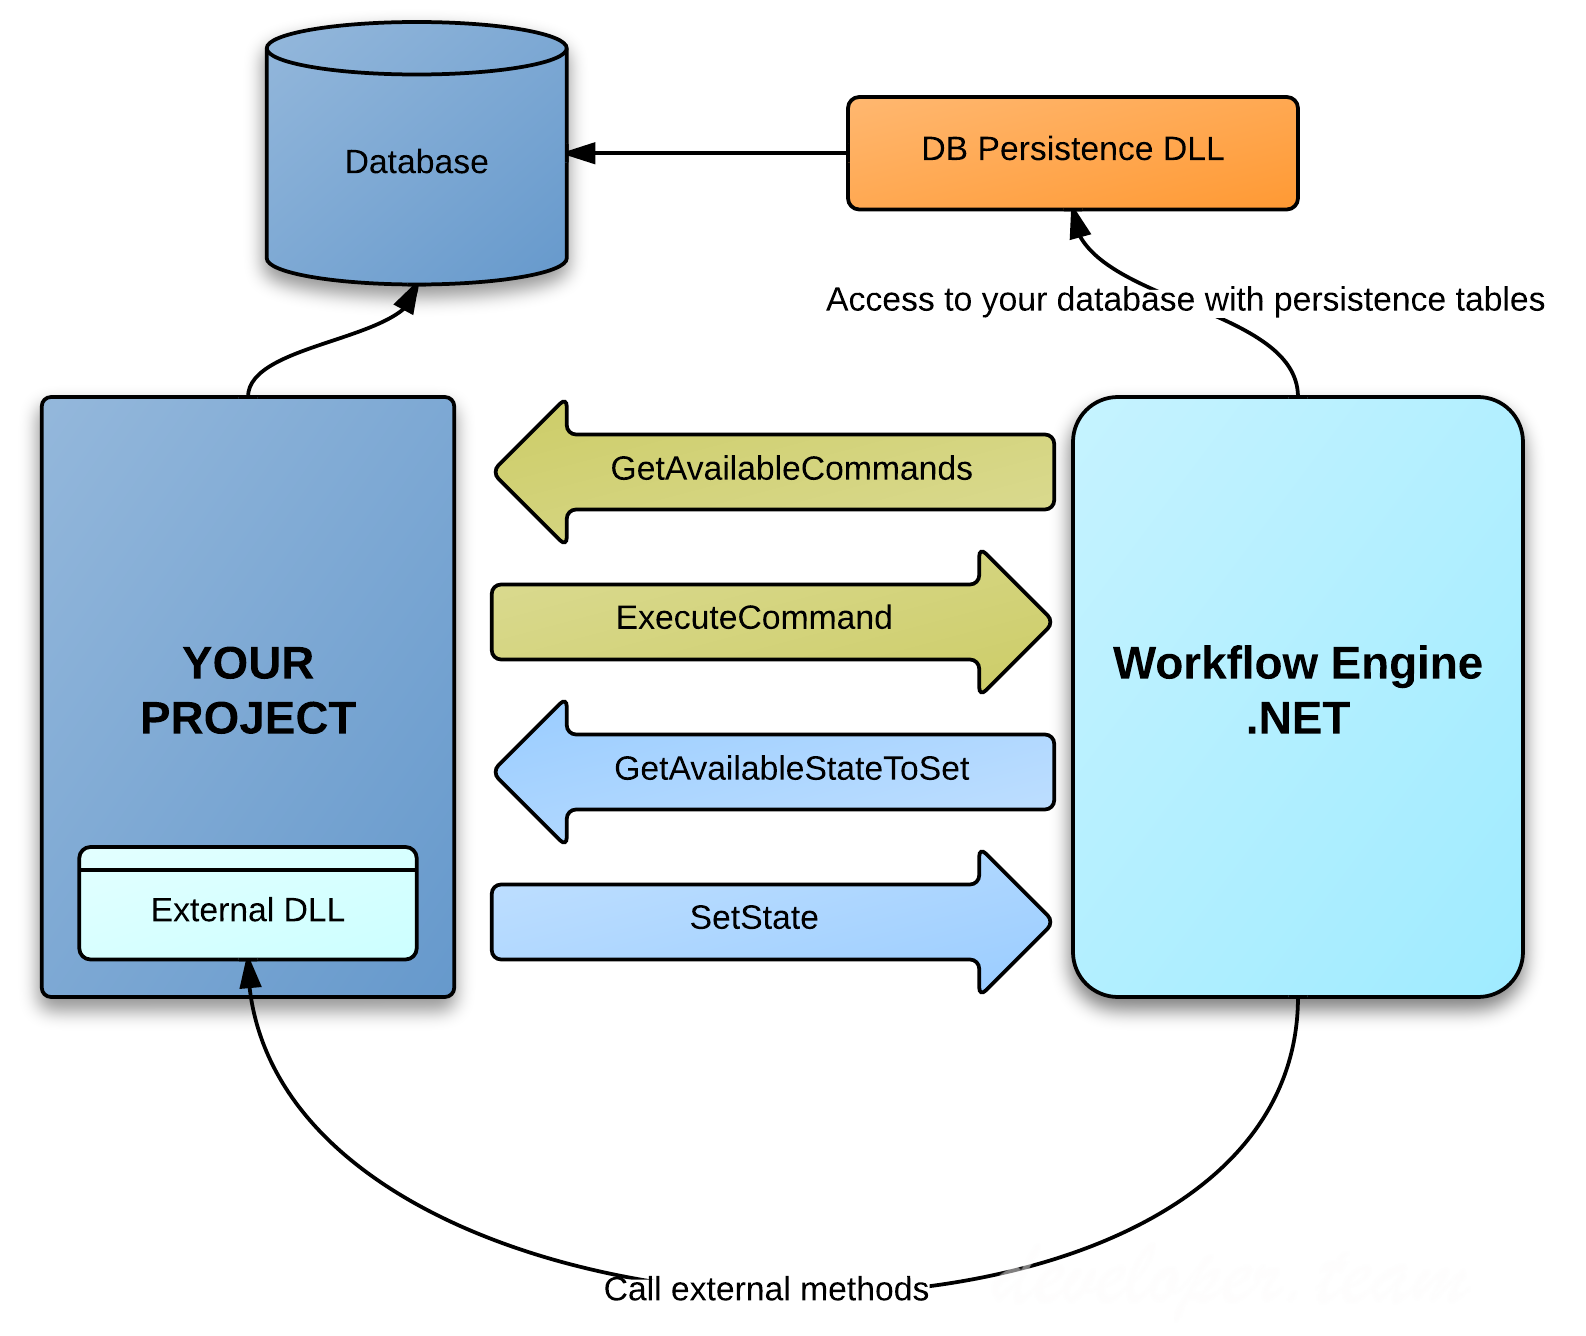 Workflow Engine.NET v3.1